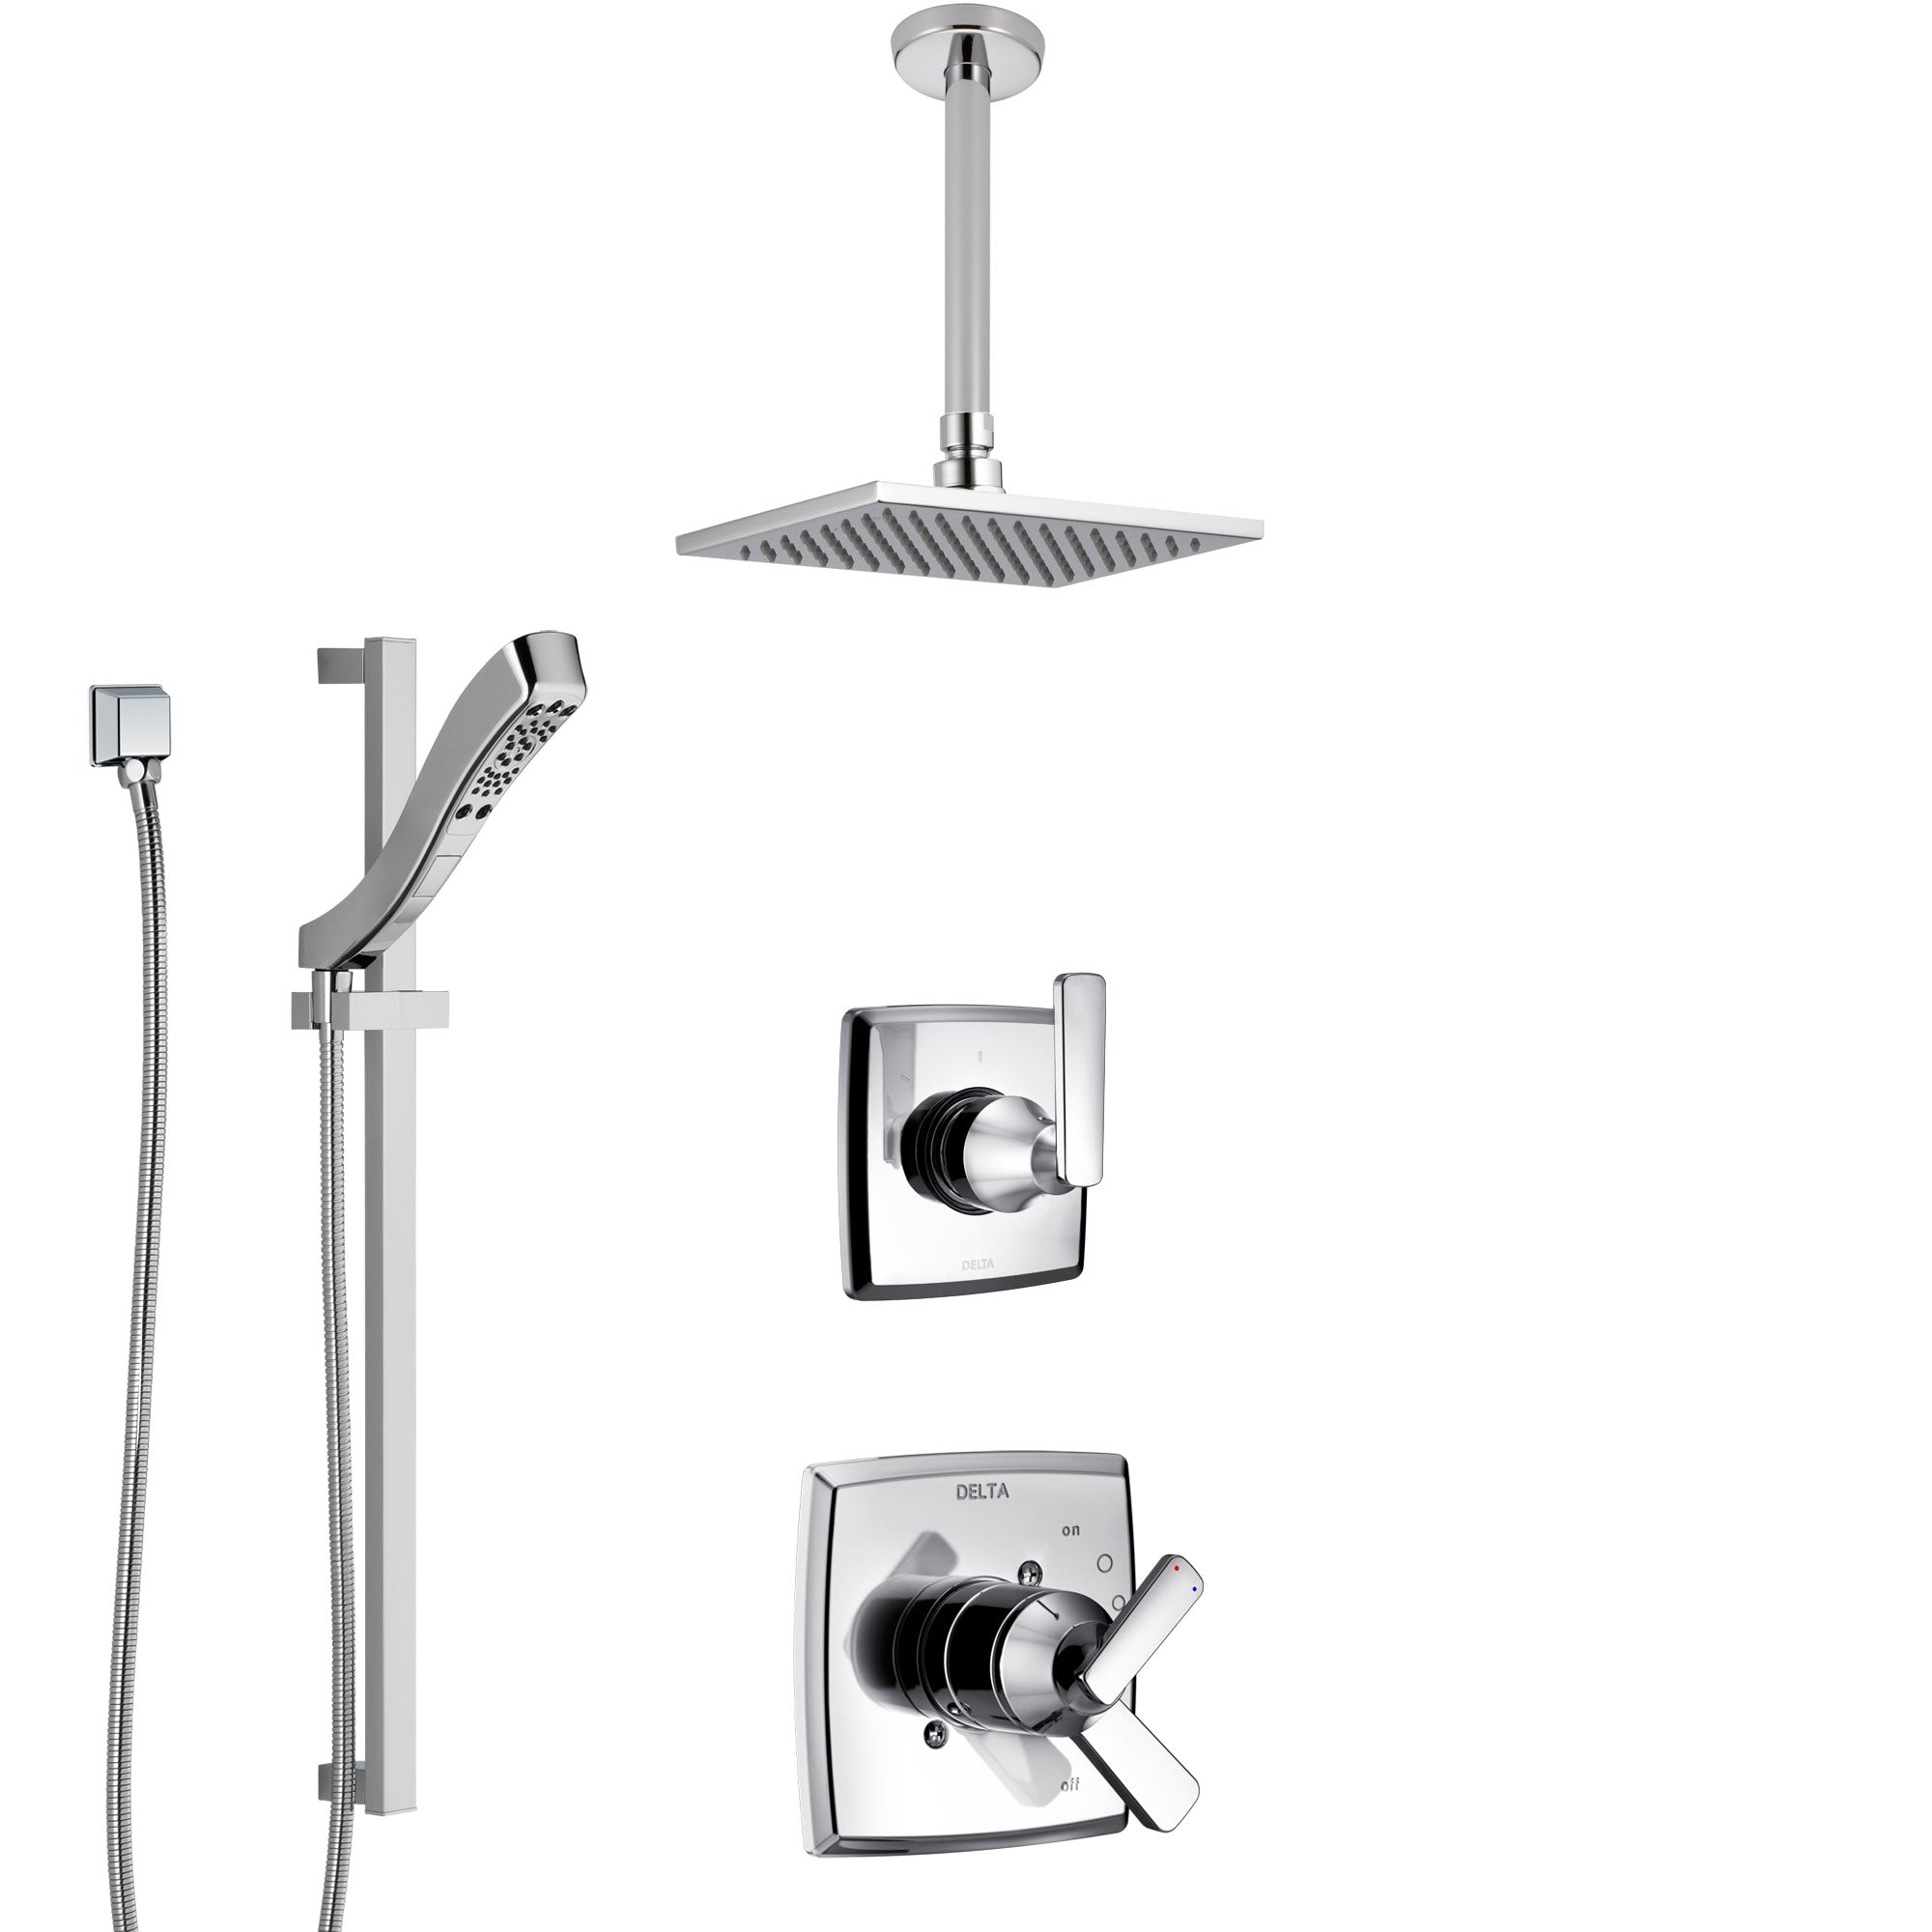 Delta Ashlyn Chrome Finish Shower System with Dual Control Handle, 3-Setting Diverter, Ceiling Mount Showerhead, and Hand Shower with Slidebar SS17642